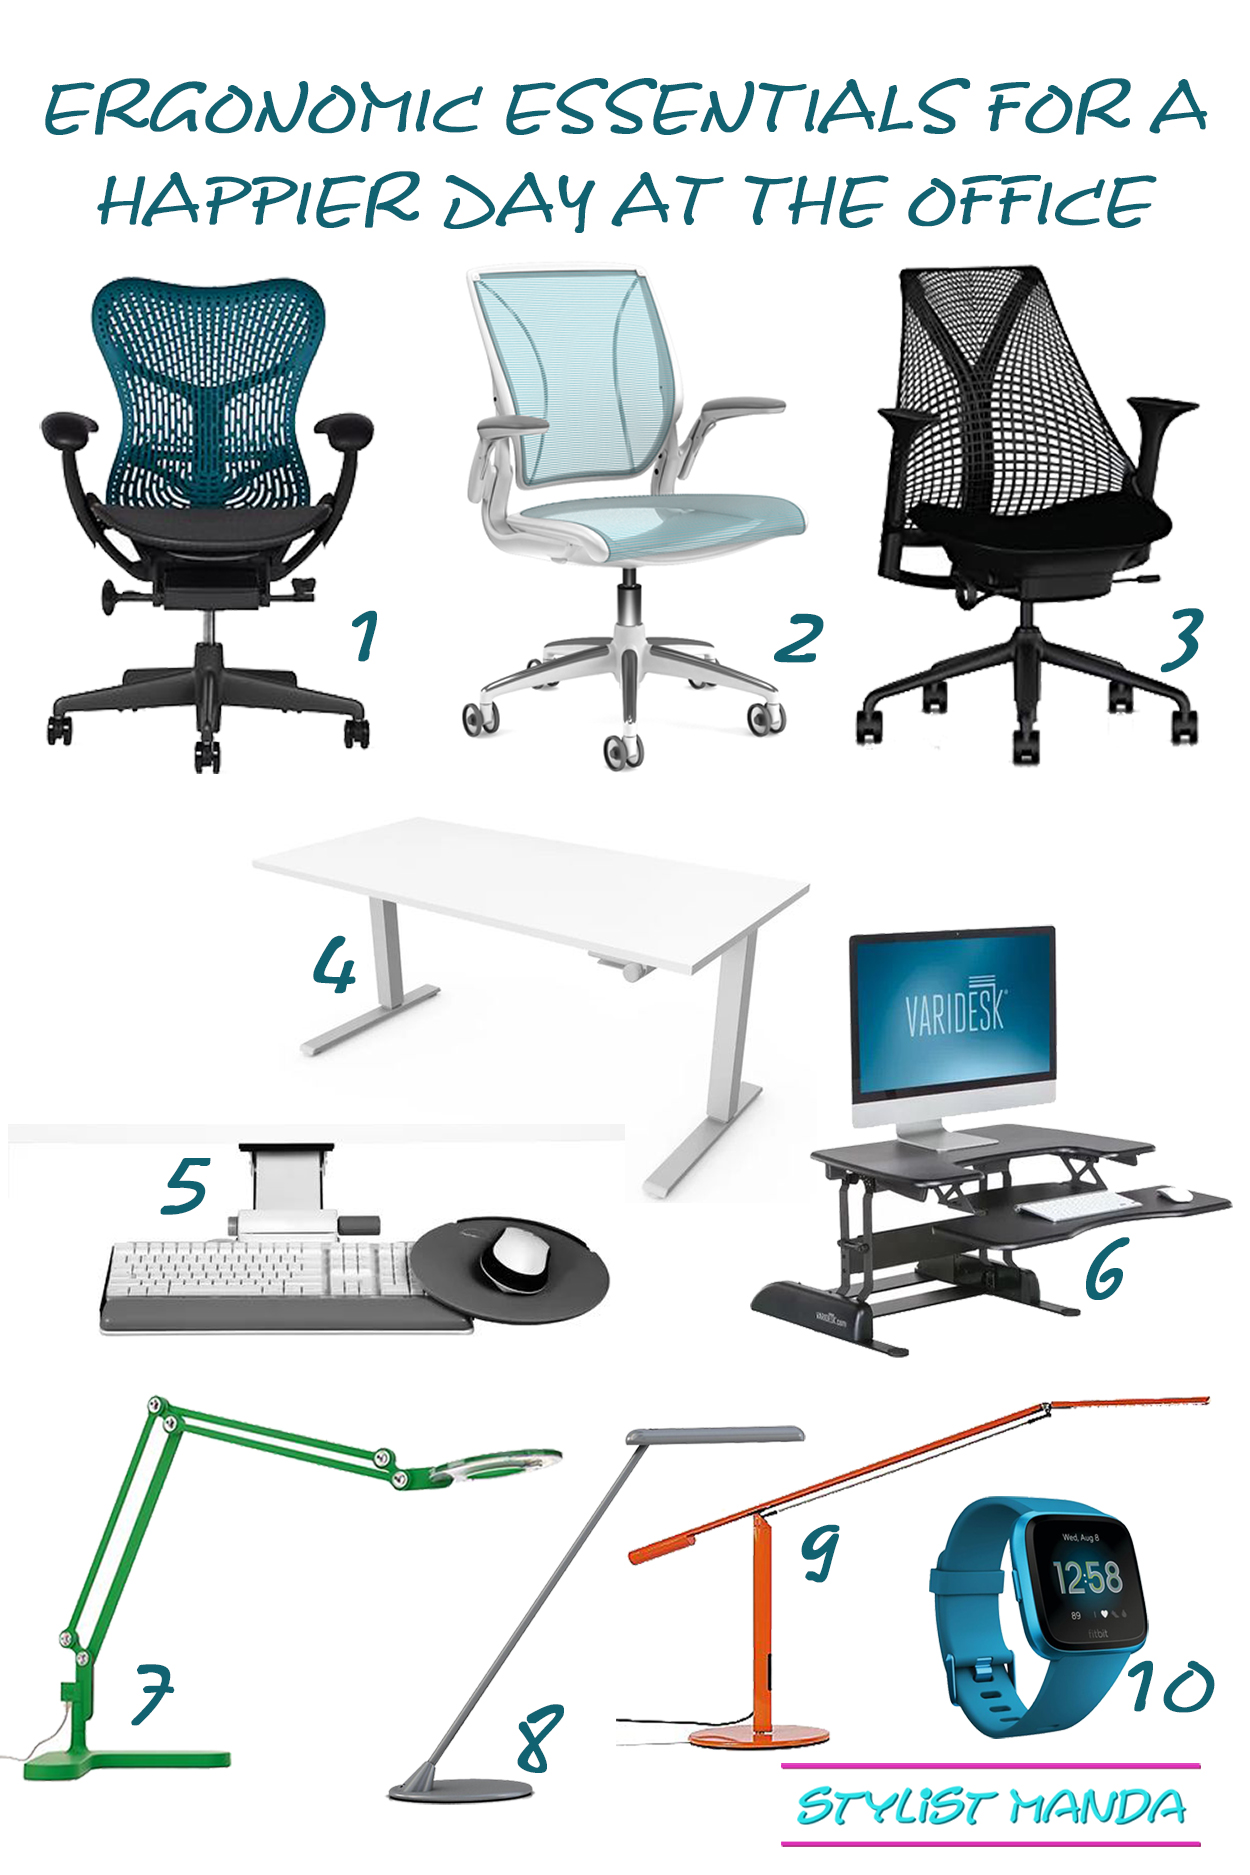 ergonomic essentials for a happier day at the office